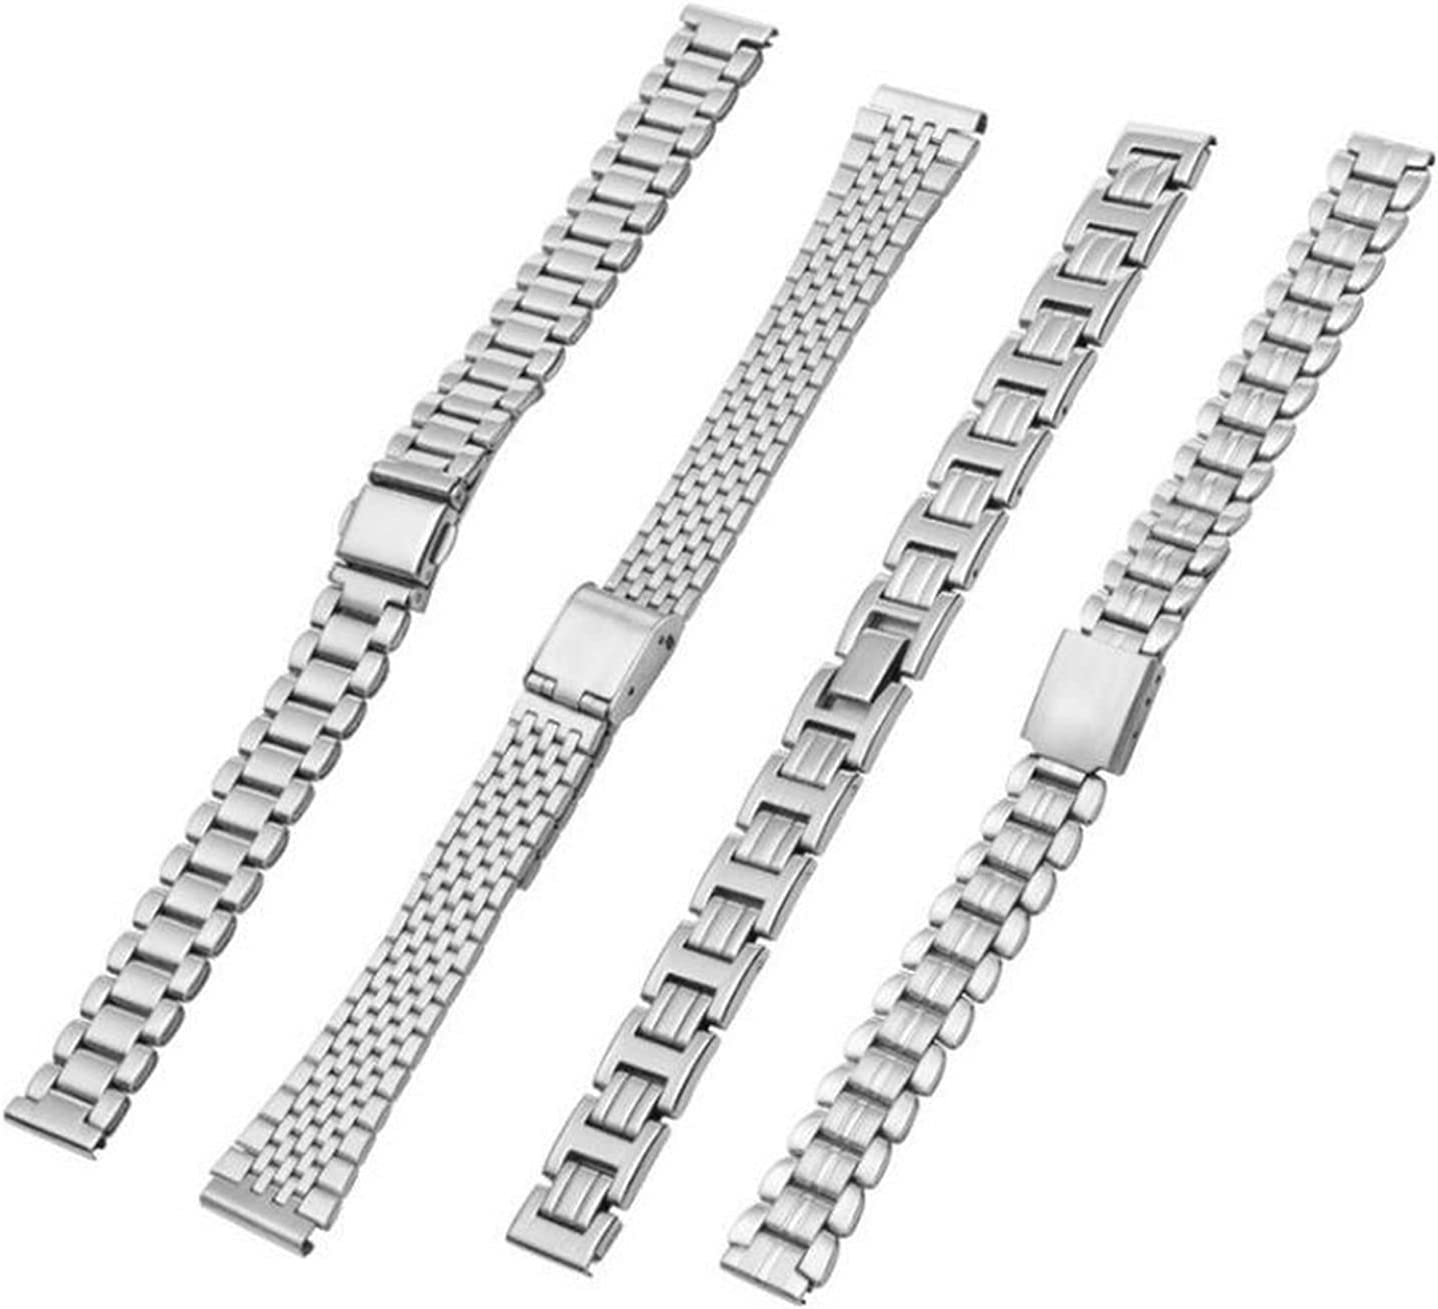 LXHY Watch Accessories Price reduction 10mm 12mm 18mm Stainless 14mm 16mm OFFer Steel